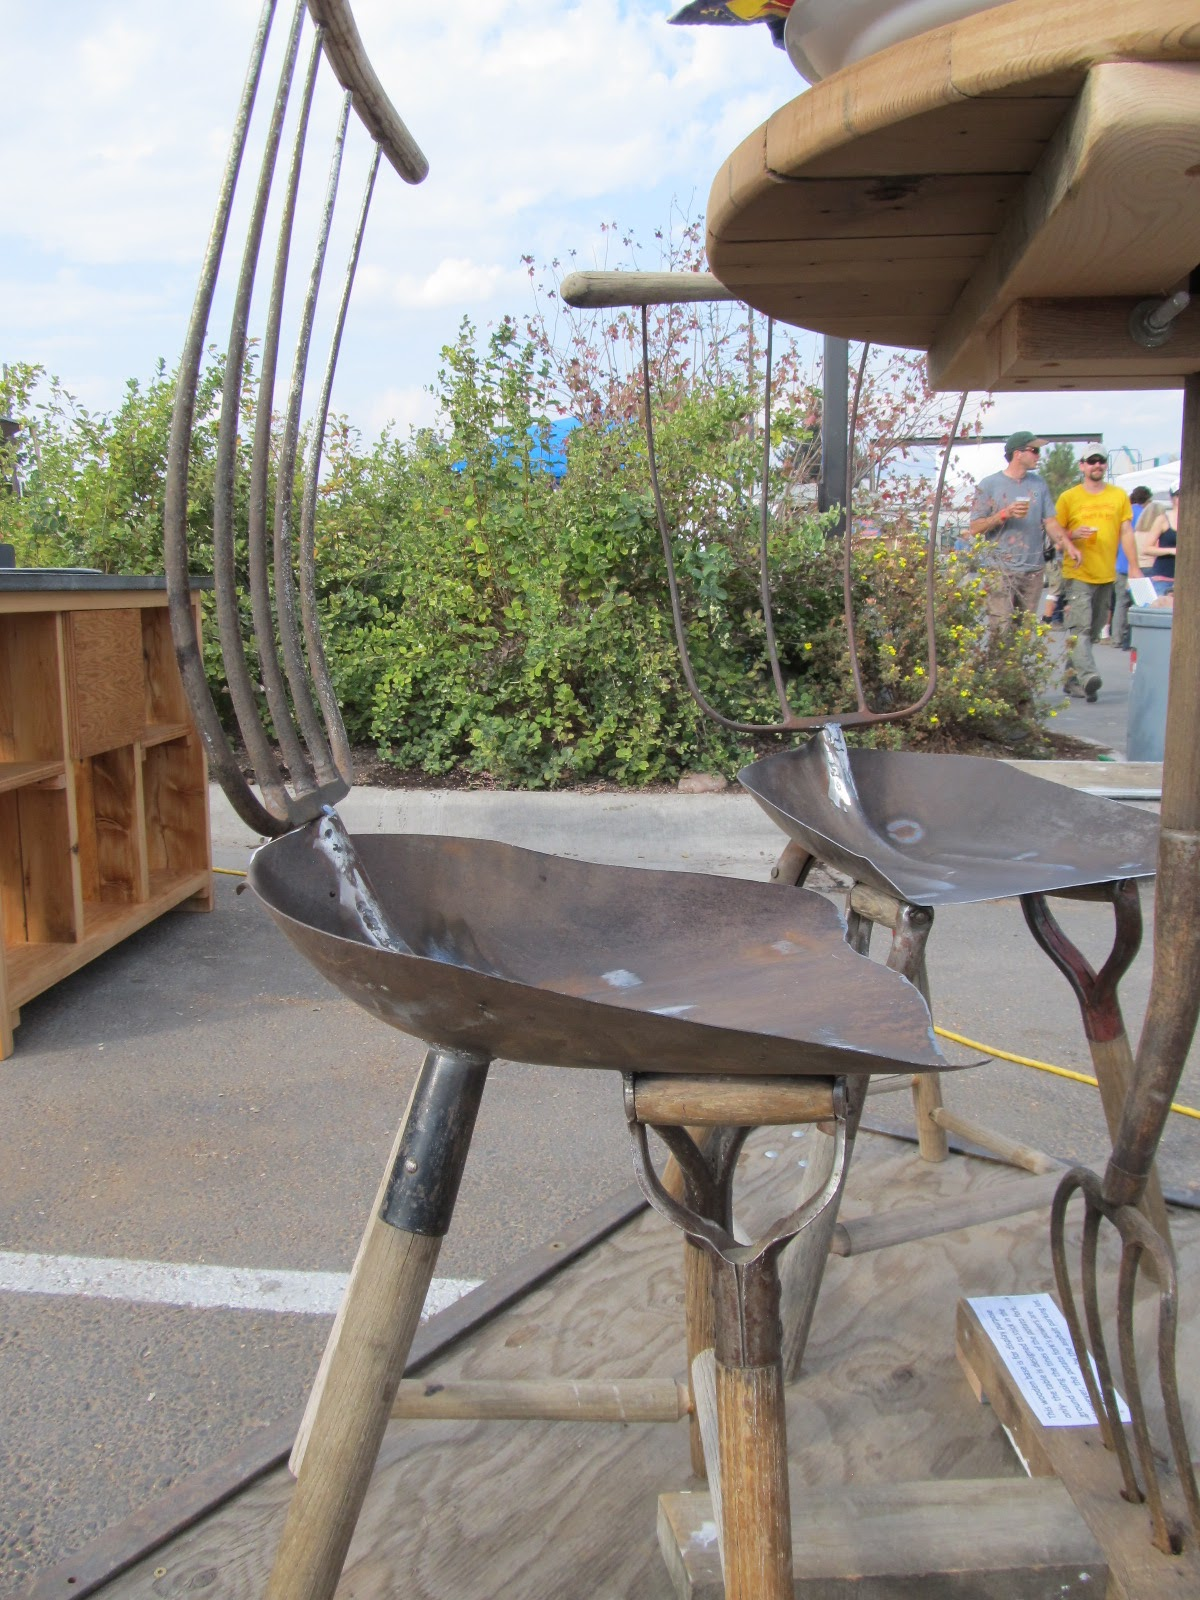 Montana Wildlife Gardener Repurposed Garden Tool Table: what are chairs made of